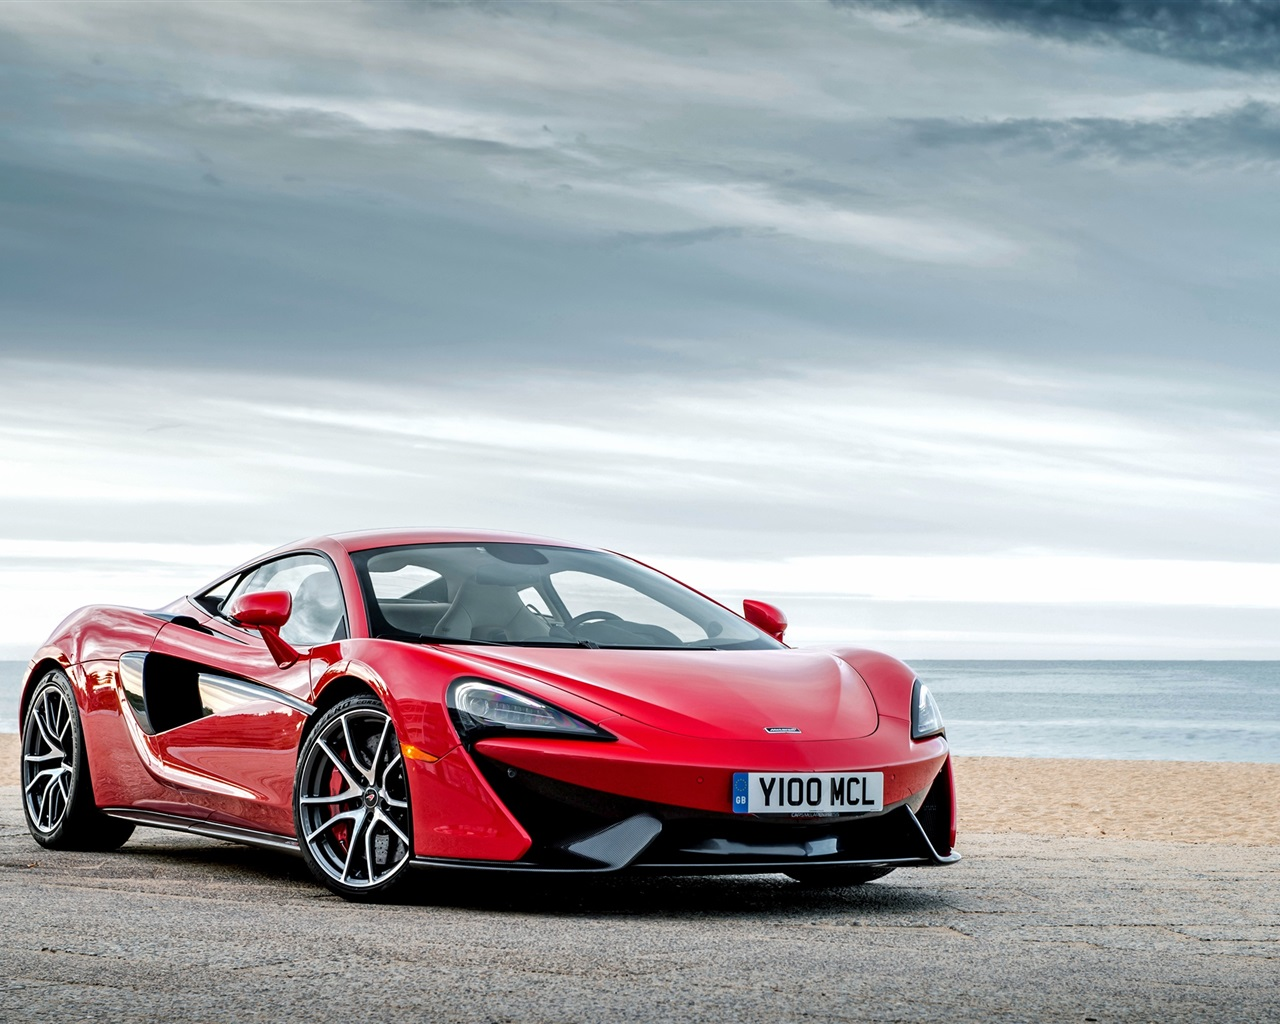 McLaren 570S red supercar Wallpaper 1280x1024 resolution wallpaper 1280x1024